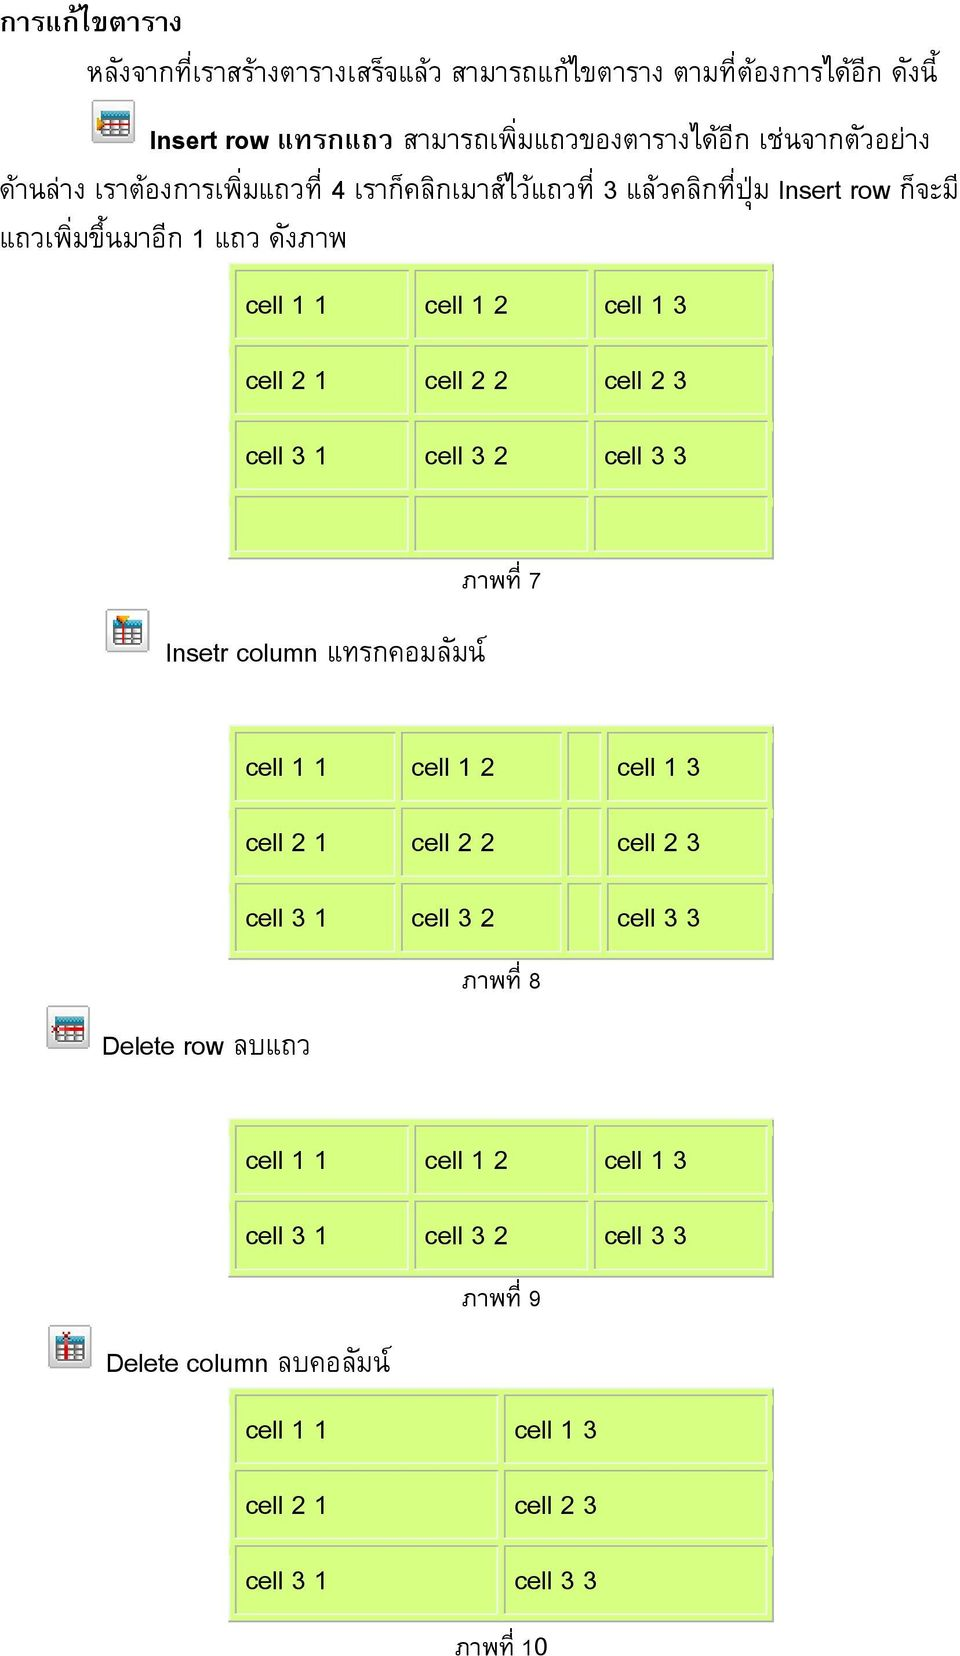 cell 2 3 cell 3 1 cell 3 2 cell 3 3 Insetr column แทรกคอมล มน ภาพท 7 cell 1 1 cell 1 2 cell 1 3 cell 2 1 cell 2 2 cell 2 3 cell 3 1 cell 3 2 cell 3 3 ภาพท 8